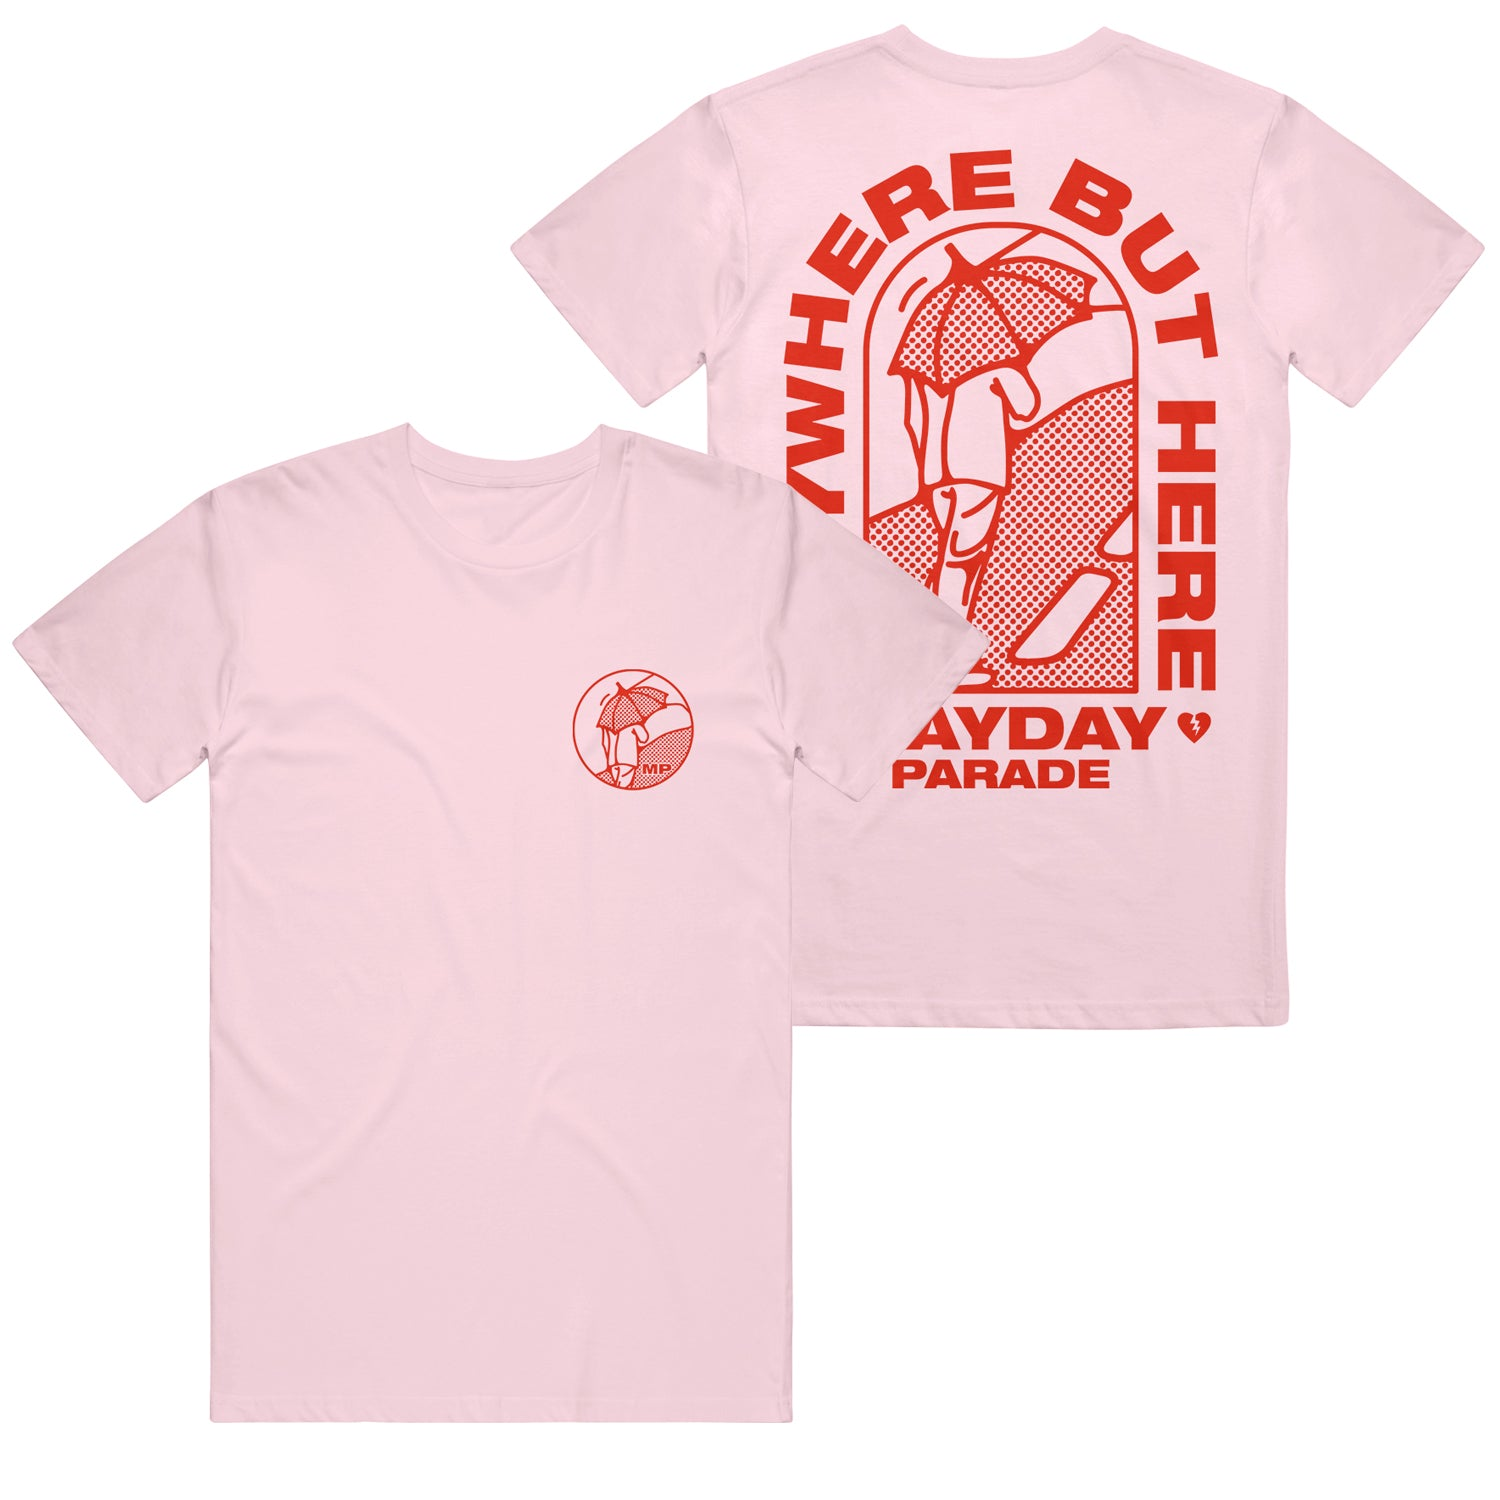 Anywhere But Here Session Pink T-Shirt